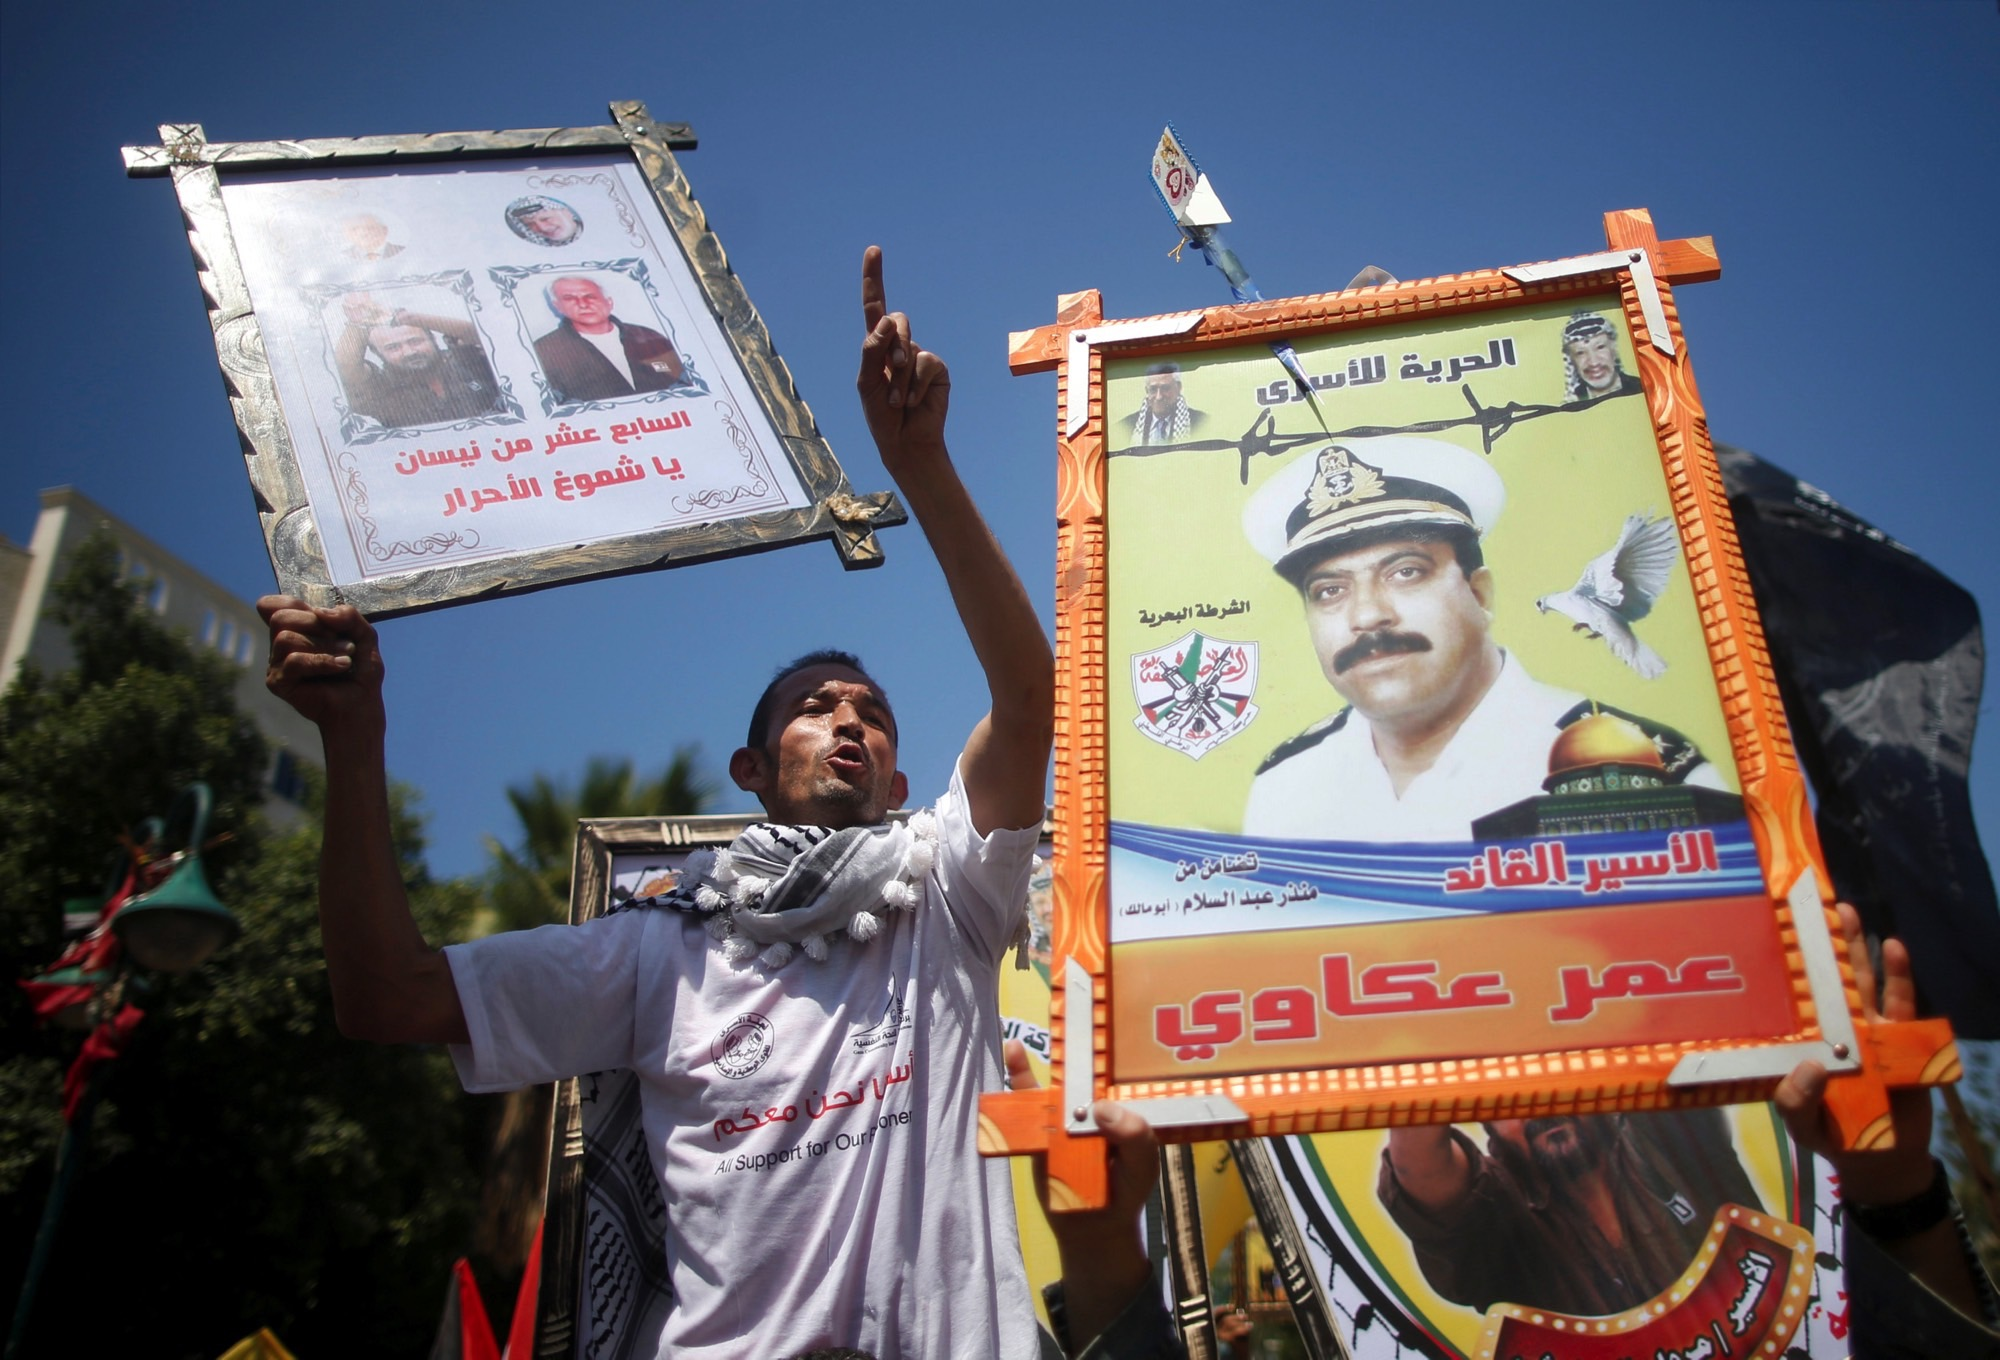 Demonstrators hold pictures of jailed Palestinians during a rally in support of Palestinian prisoners on hunger strike in Israeli jails, in Gaza City April 17, 2017. Credit: Reuters/Mohammed Salem